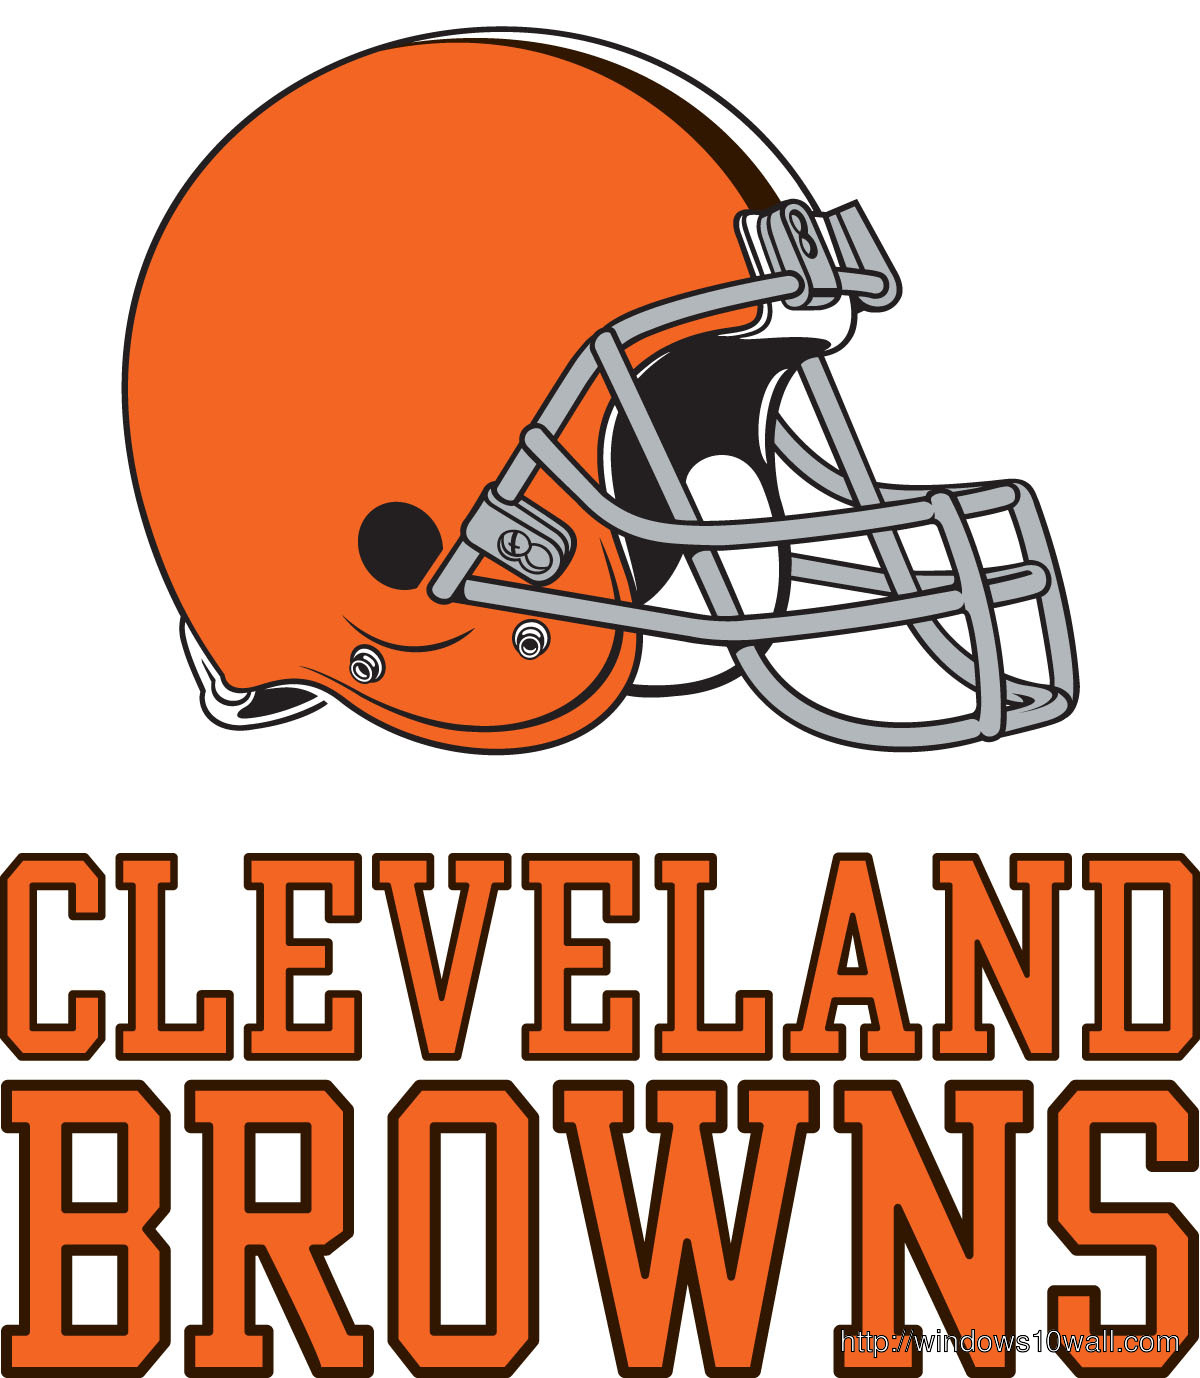 Cleveland Browns Schedule The official source of the latest Browns regular season and preseason schedule